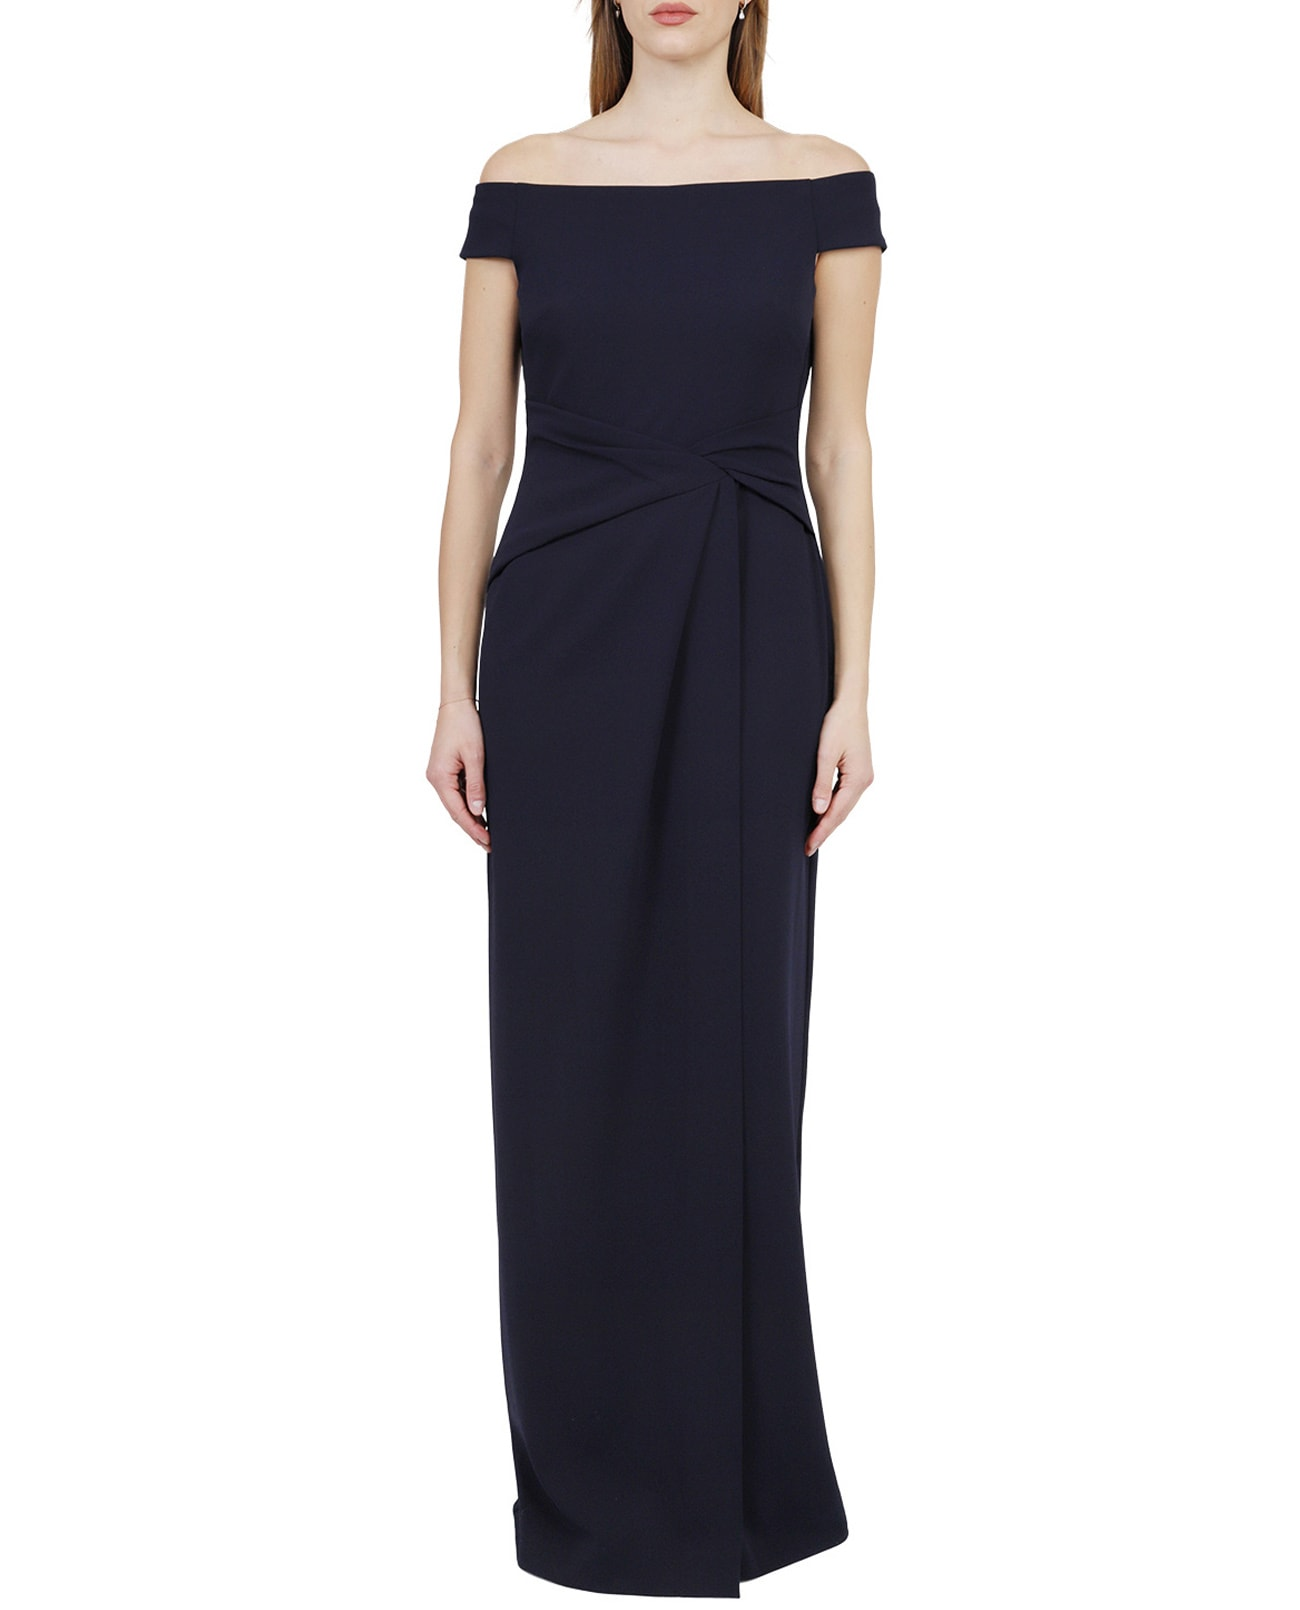 Lauren Ralph Lauren Navy Saran Dress